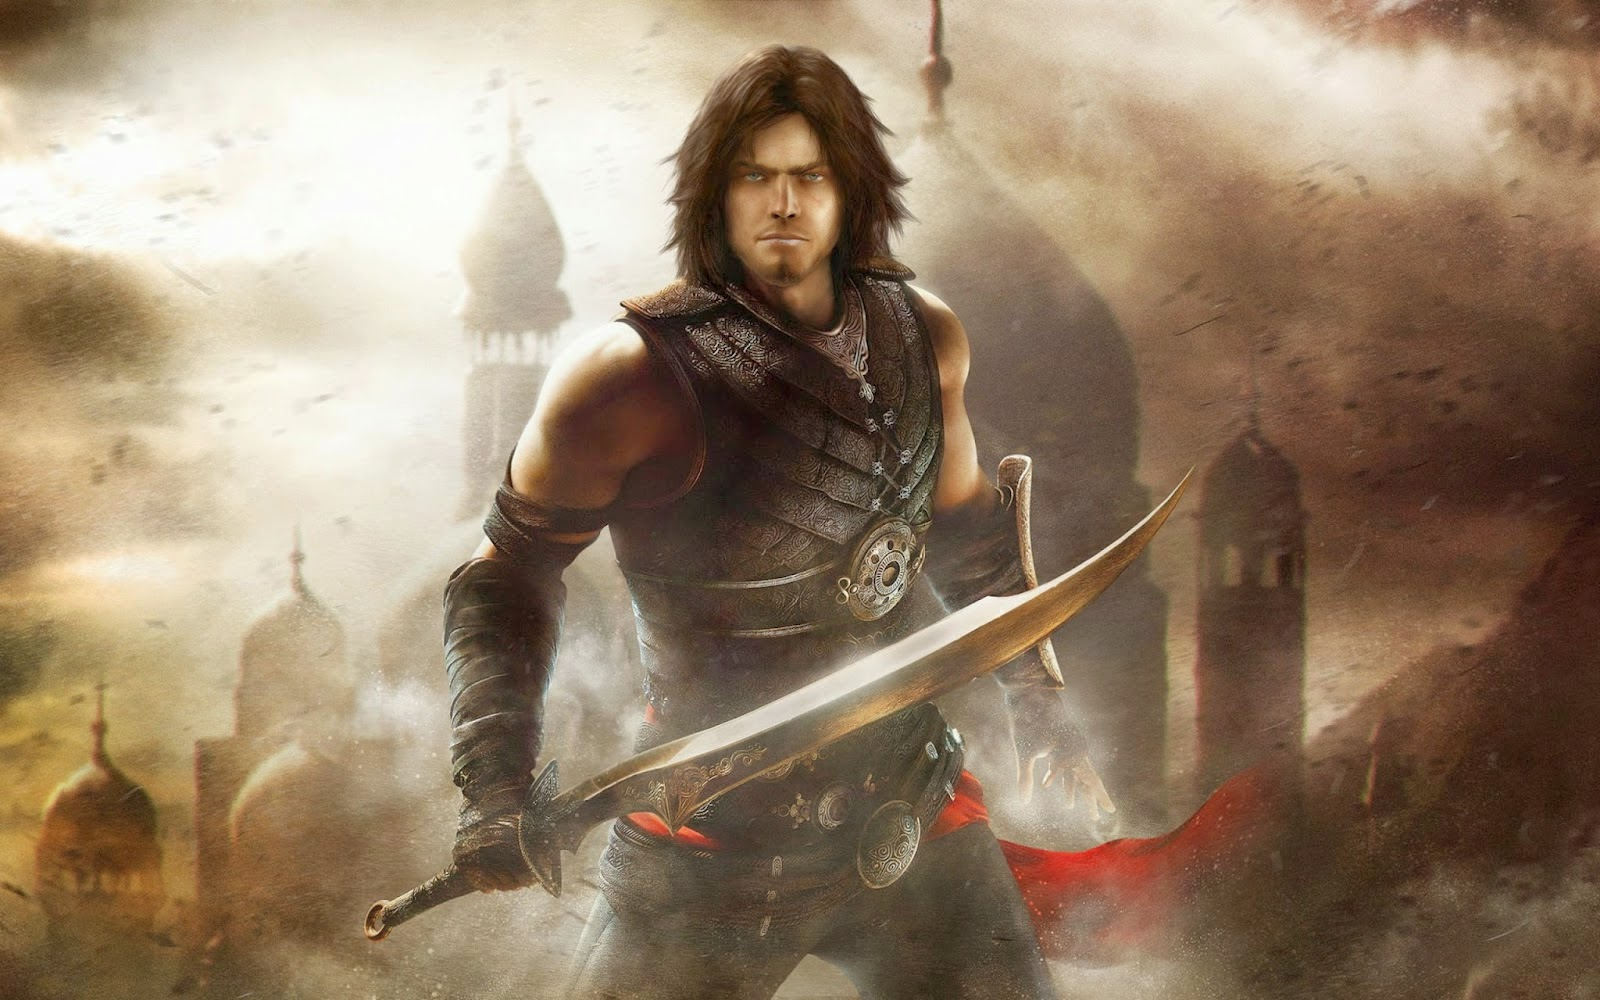 Prince of Persia Apk for Android Phones & Tablets